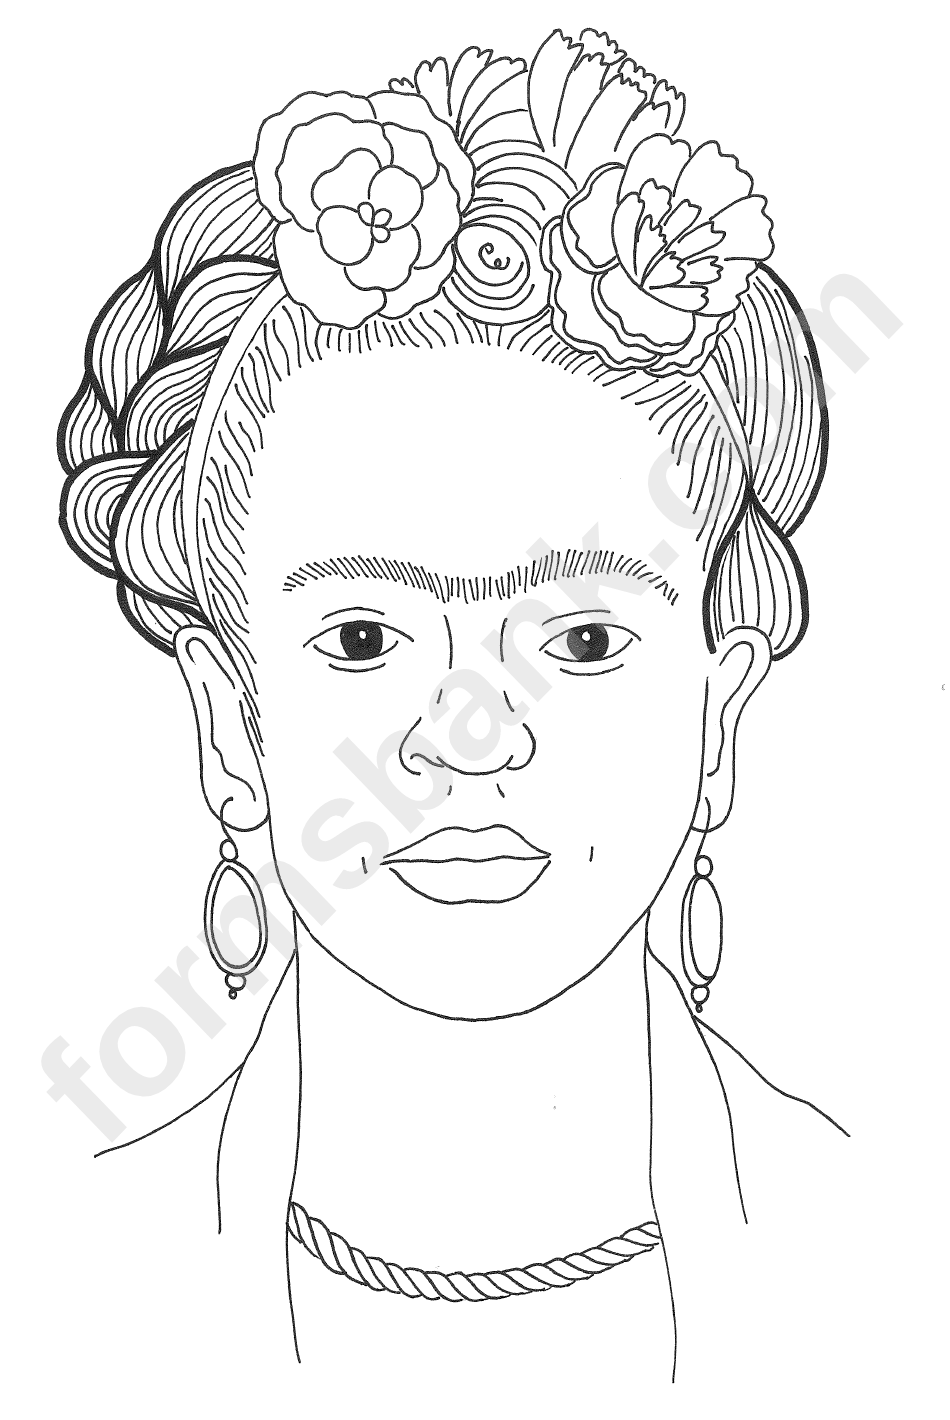 Frida Kahlo Coloring Sheet printable pdf download